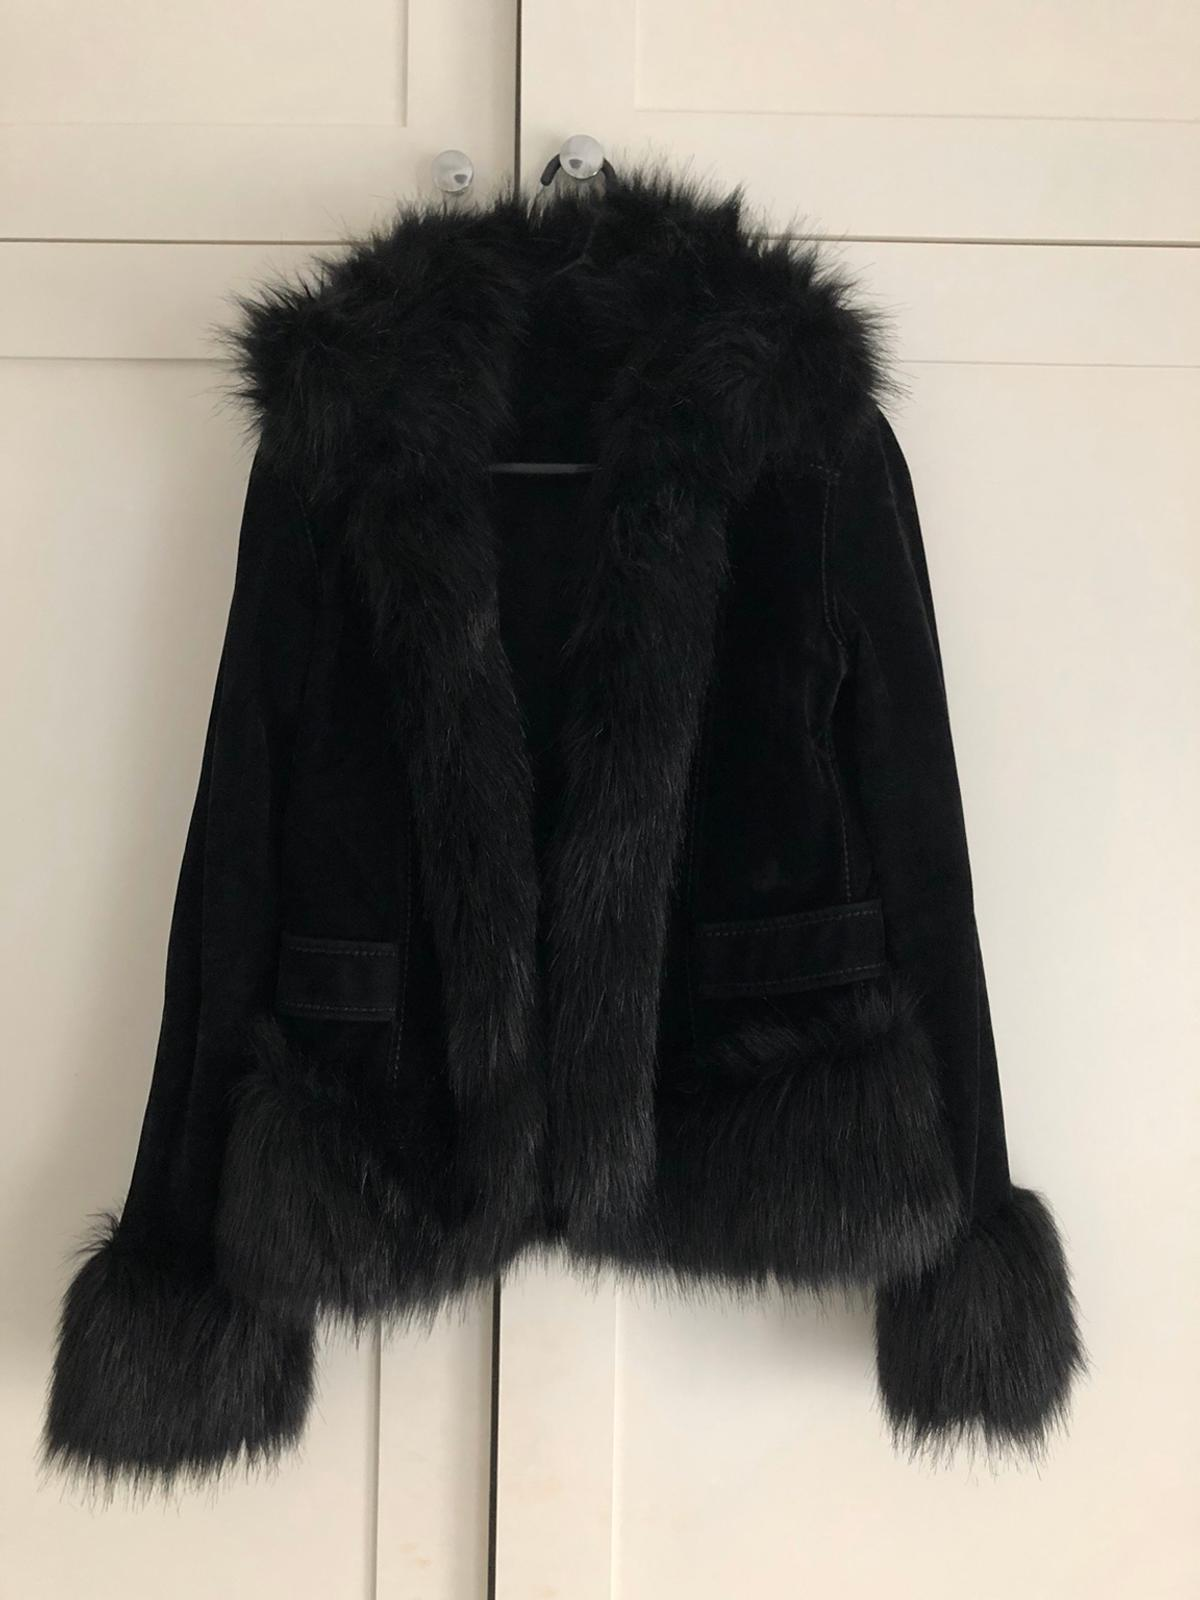 Glamorous faux fur coat in suede Perfect condition Size small will fit an 8-10